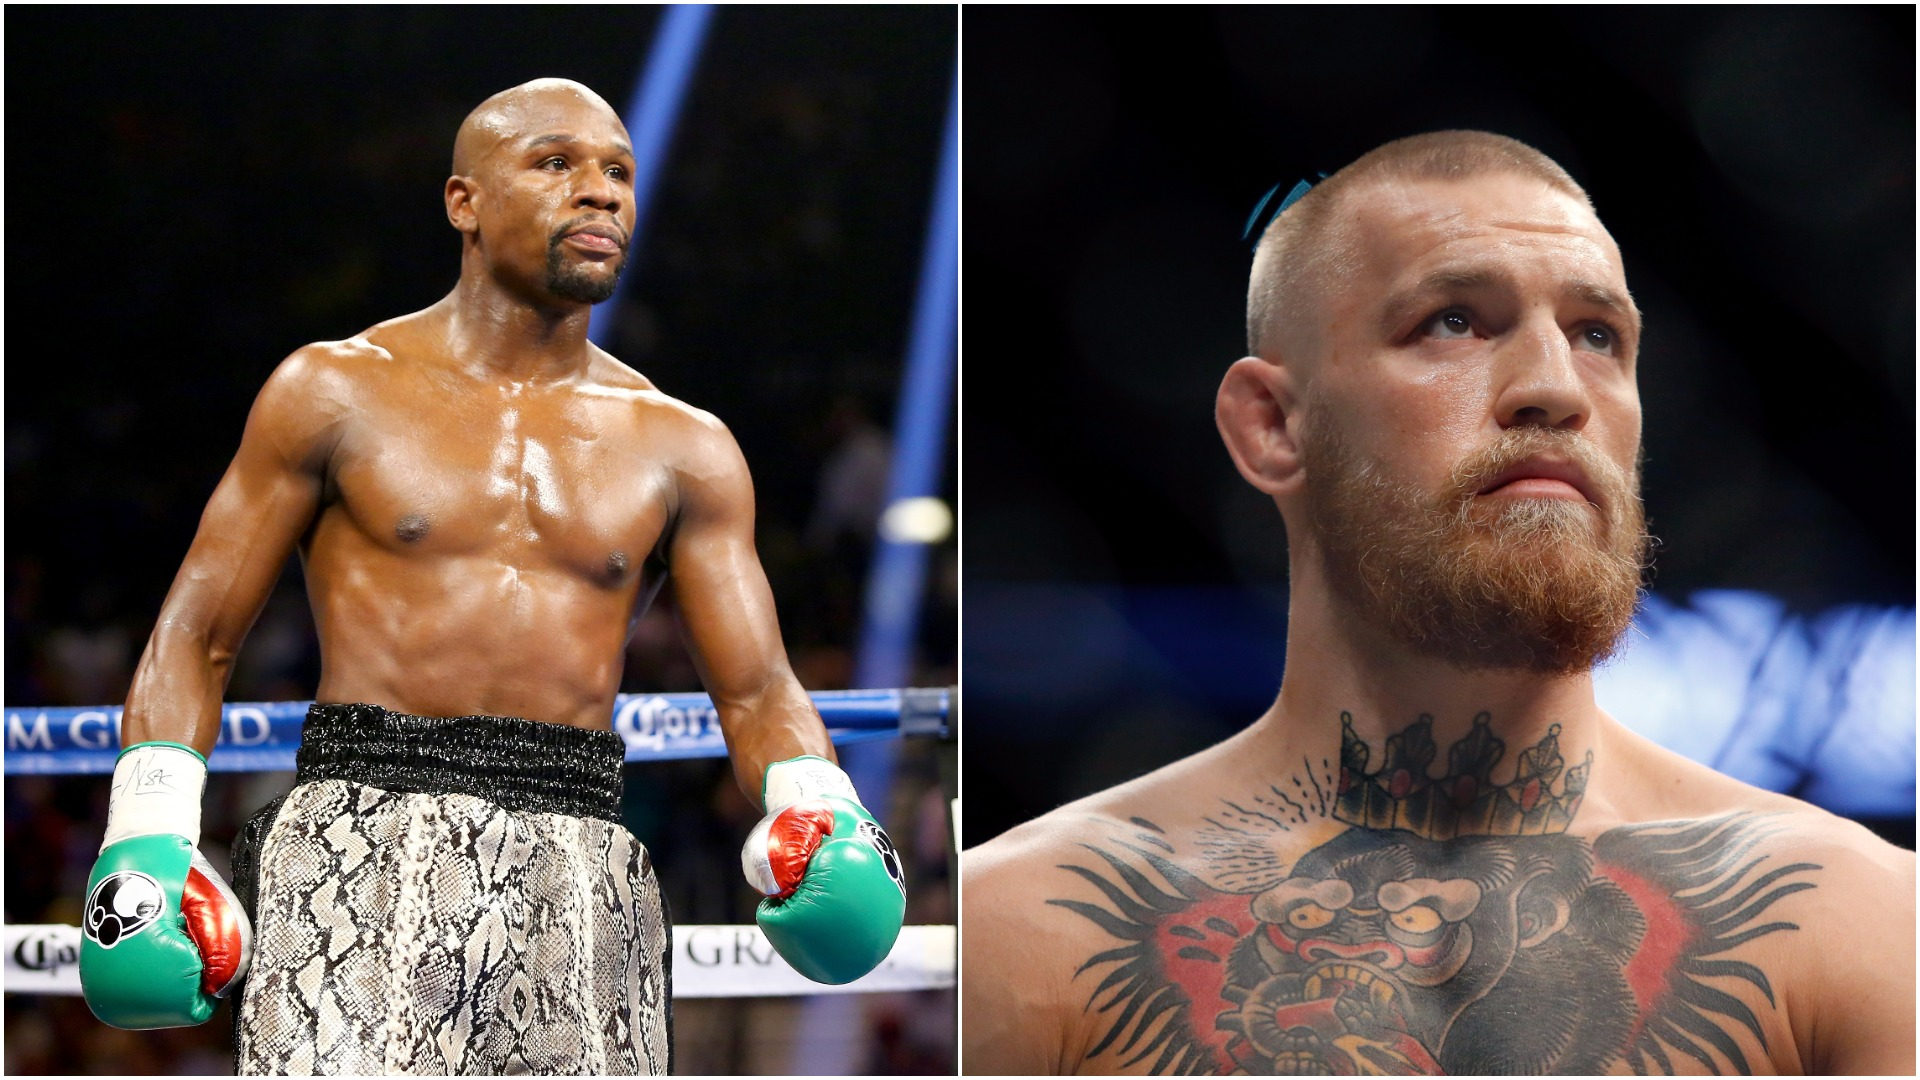 Dana White on Conor McGregor vs. Floyd Mayweather: 'We're nowhere with it'